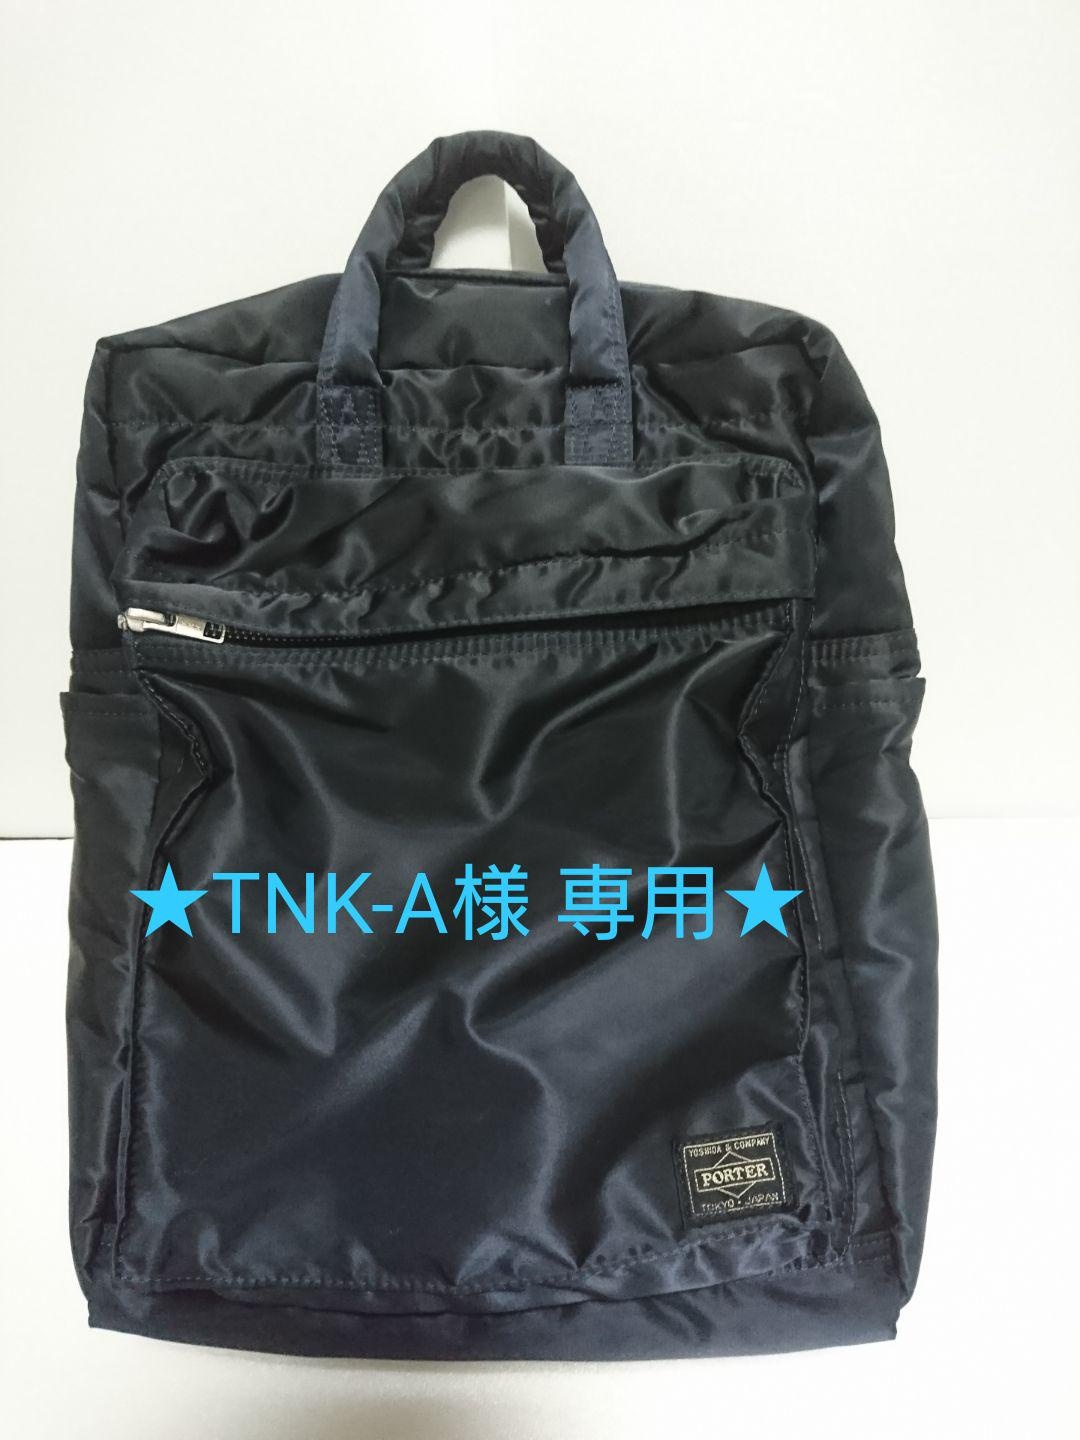 ebf6db2c499c ★TNK-A様専用★HEAD PORTER 2WAY BAG ネイビー(¥ 11